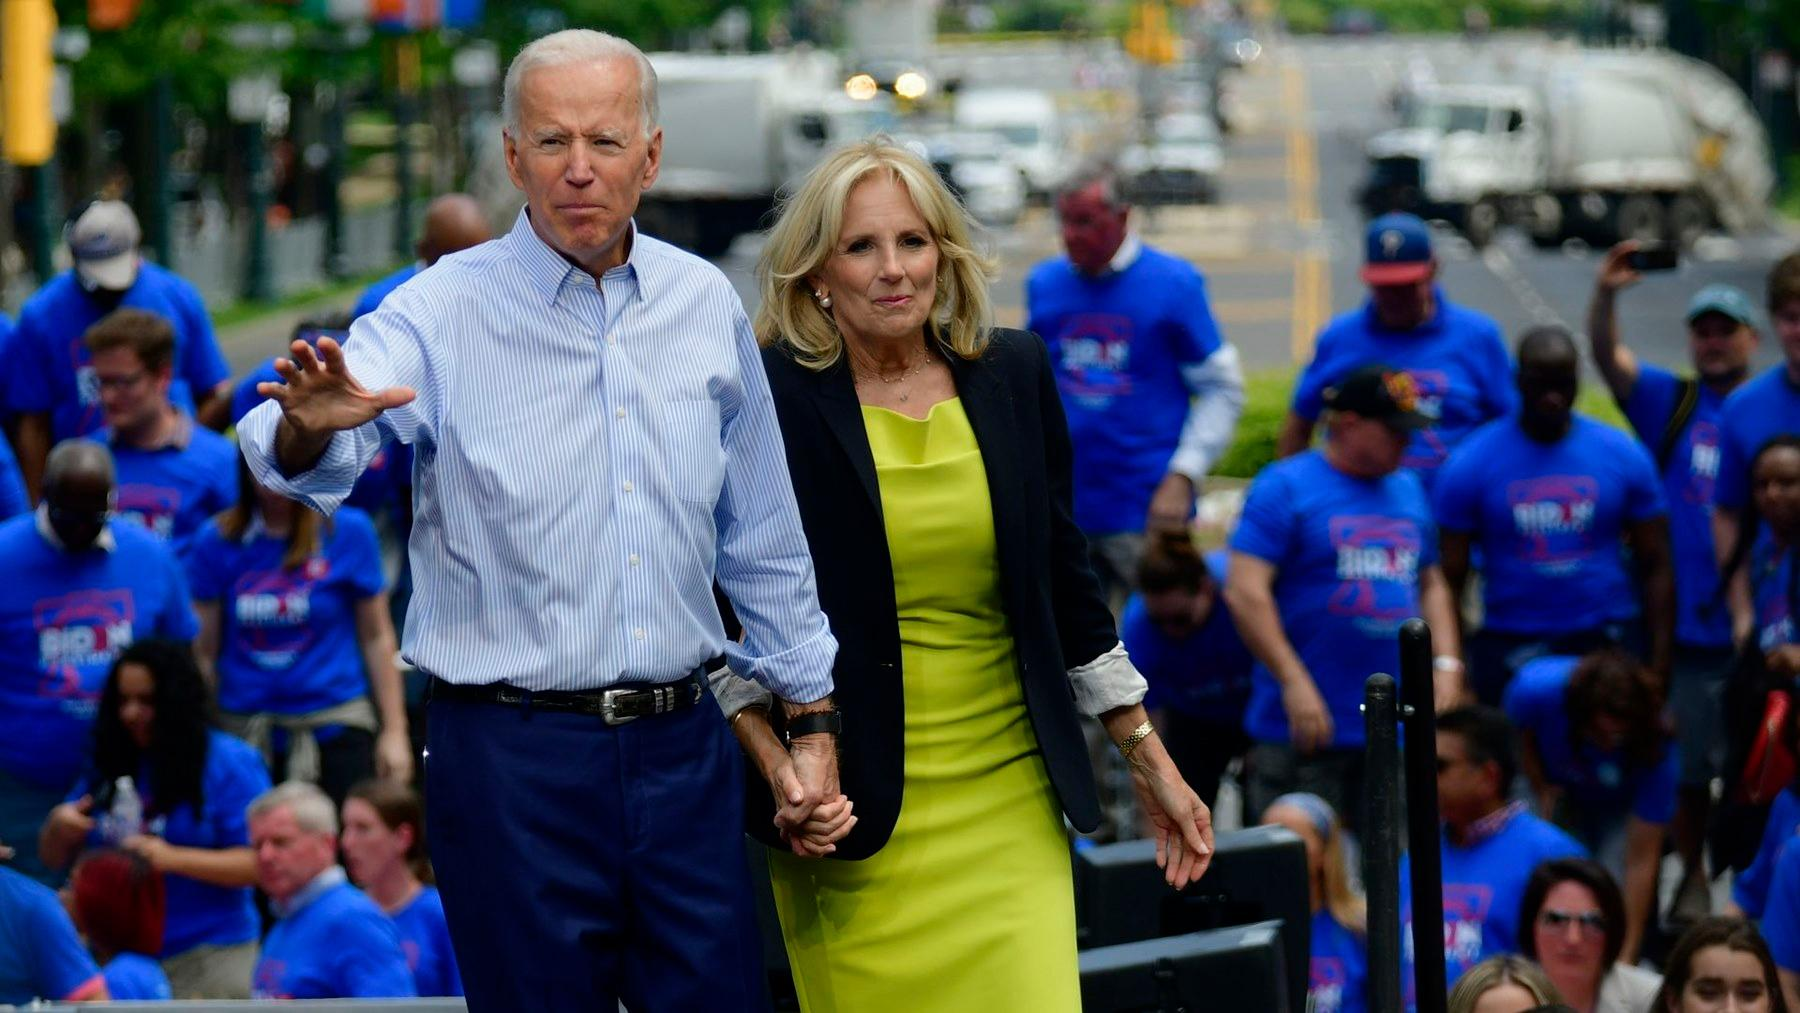 Joe Biden And His Wife, Jill Biden, Reveal The Name Of The Person They Want As Vice President